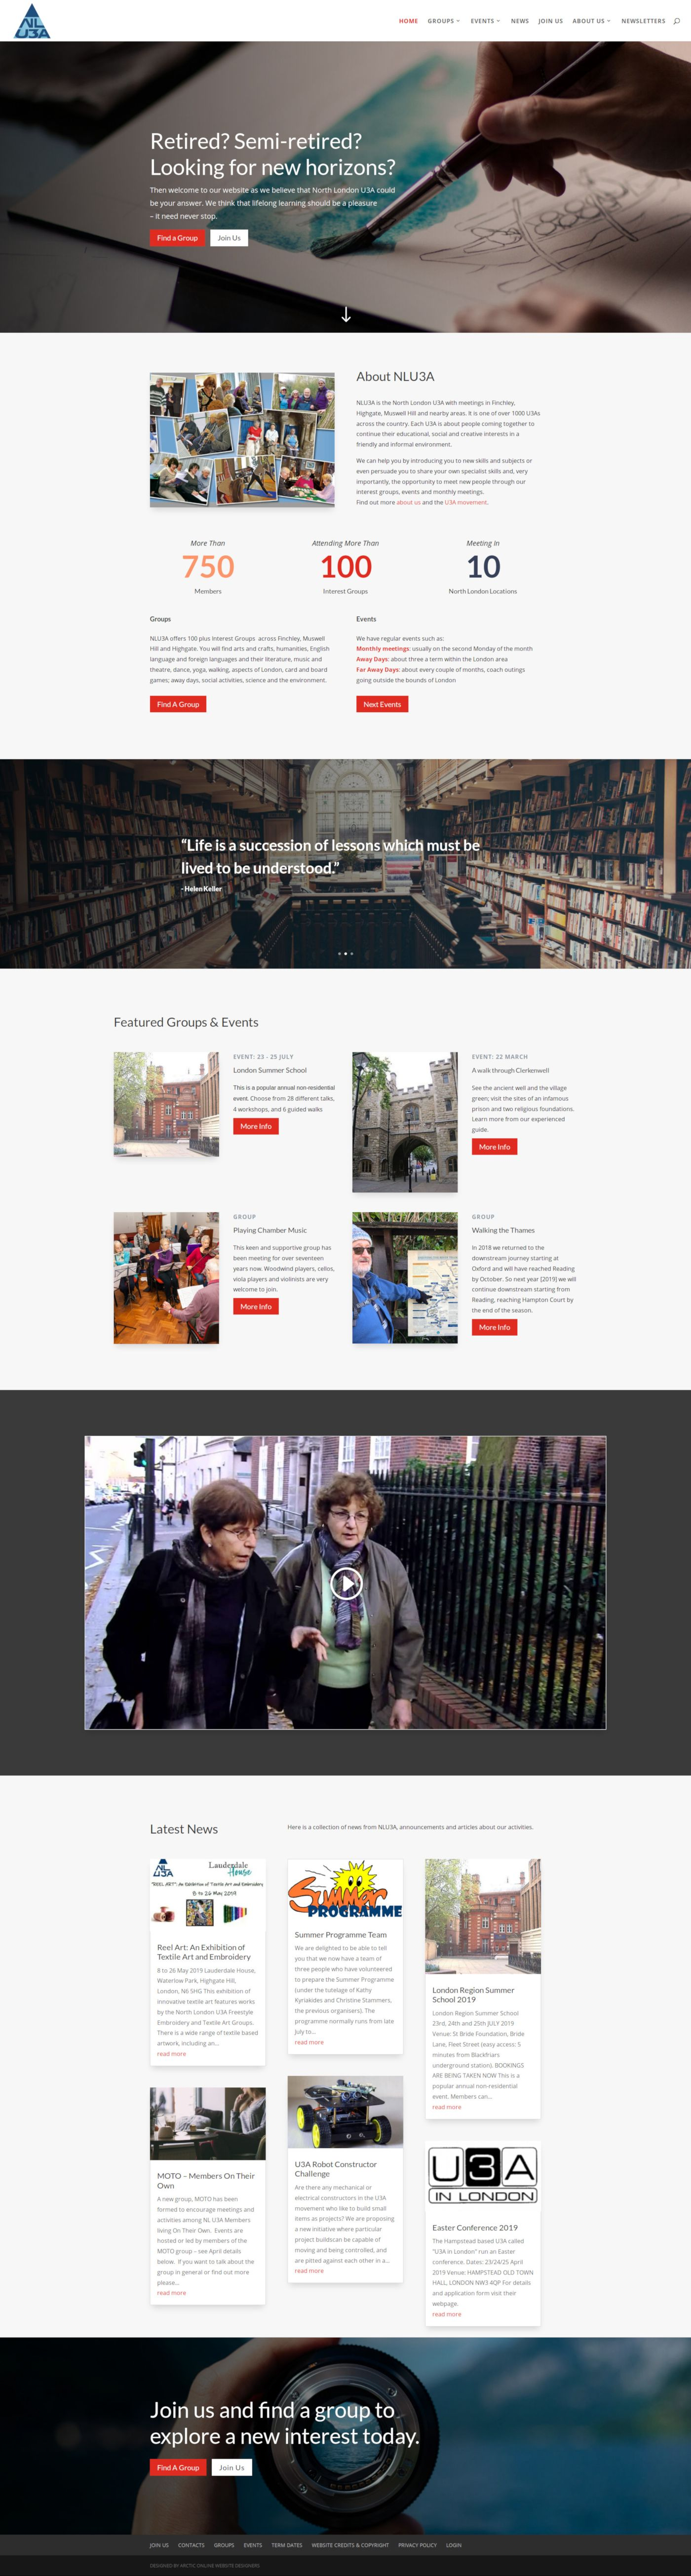 Home Page Screenshot of WordPress Website Design For North London U3A